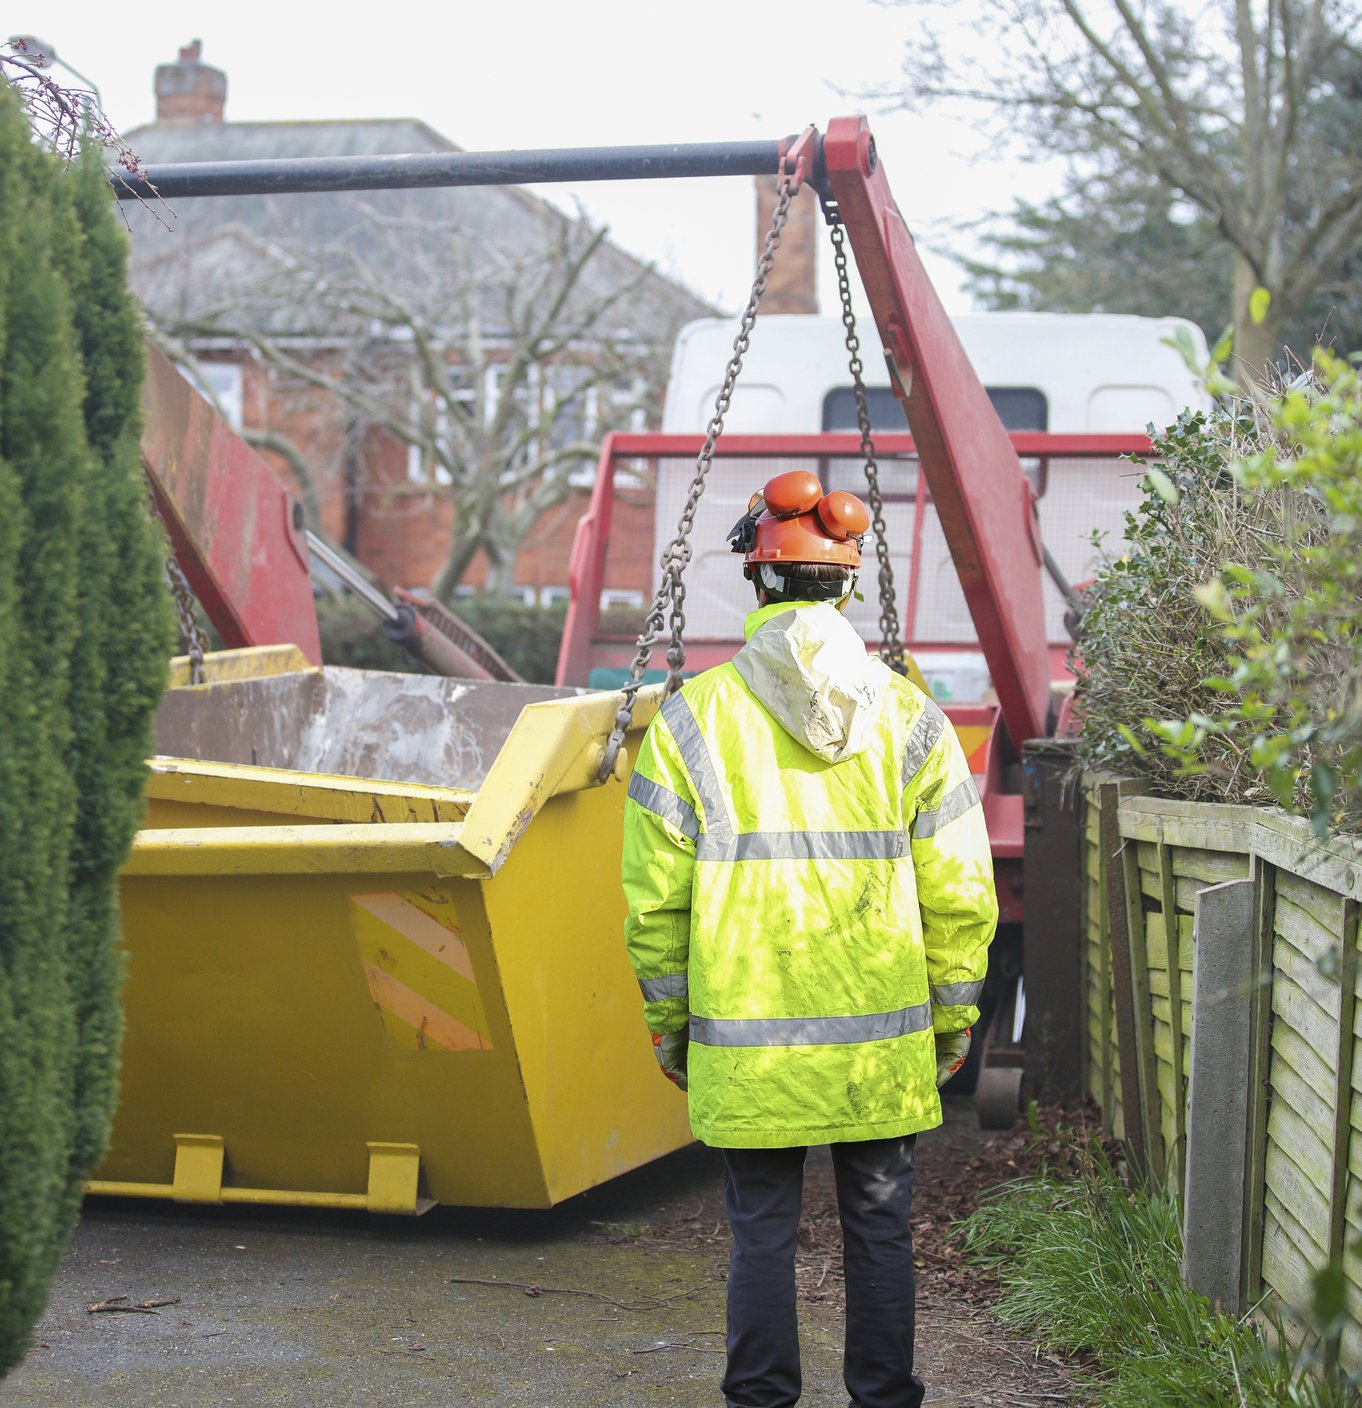 Builder supervising the delivery and unloading of a skip